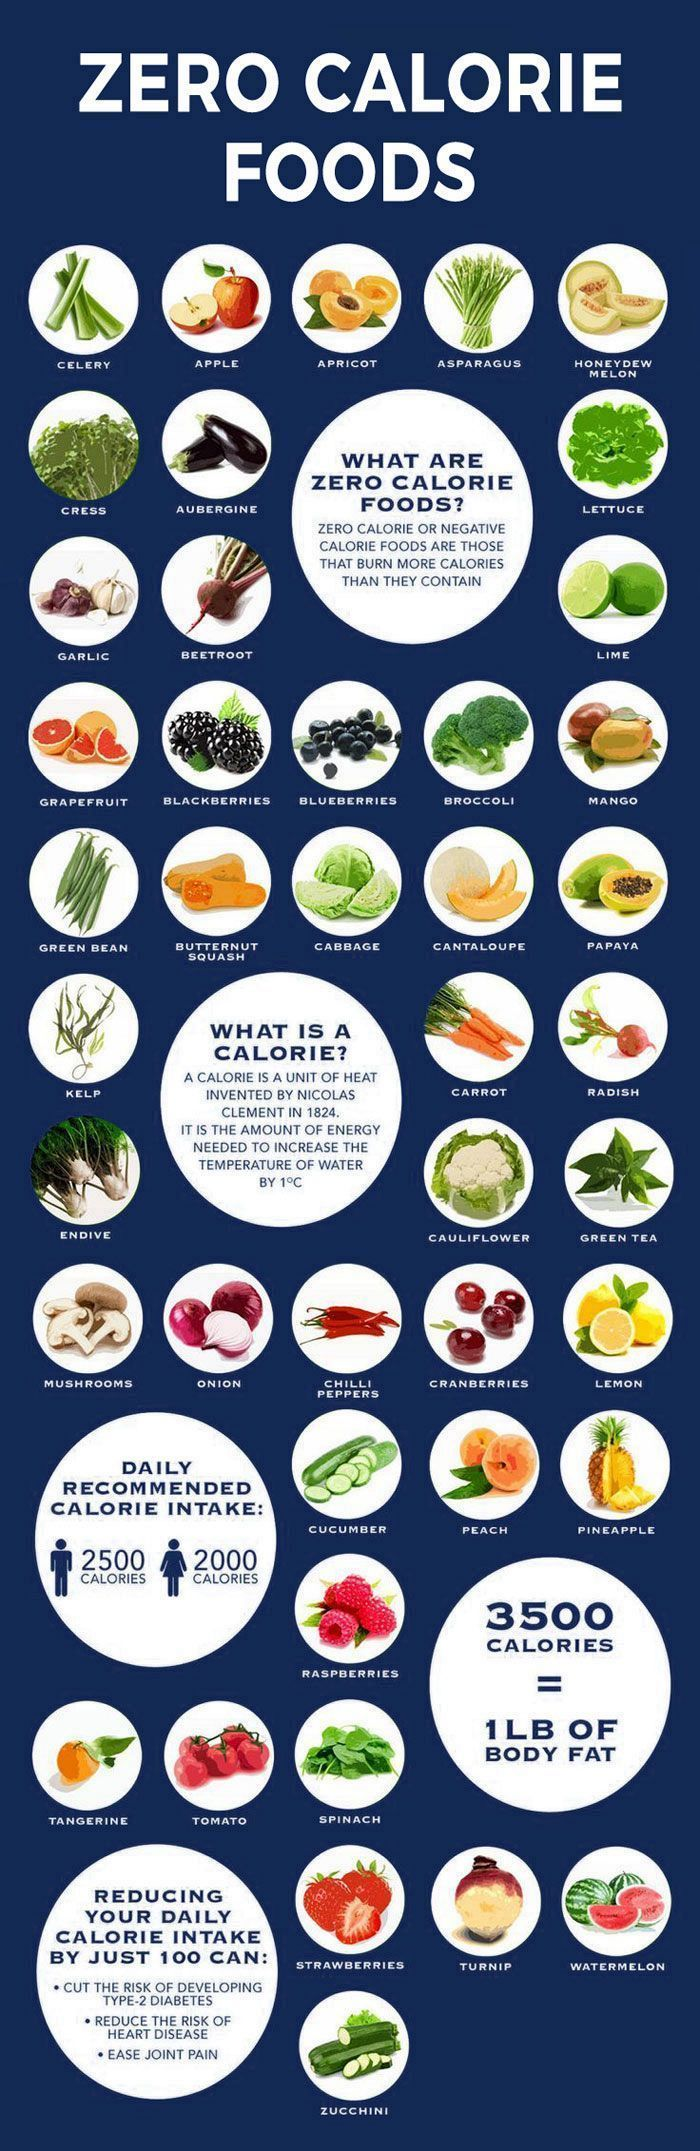 Best fat-burning foods. Zero calorie/negative calorie foods.